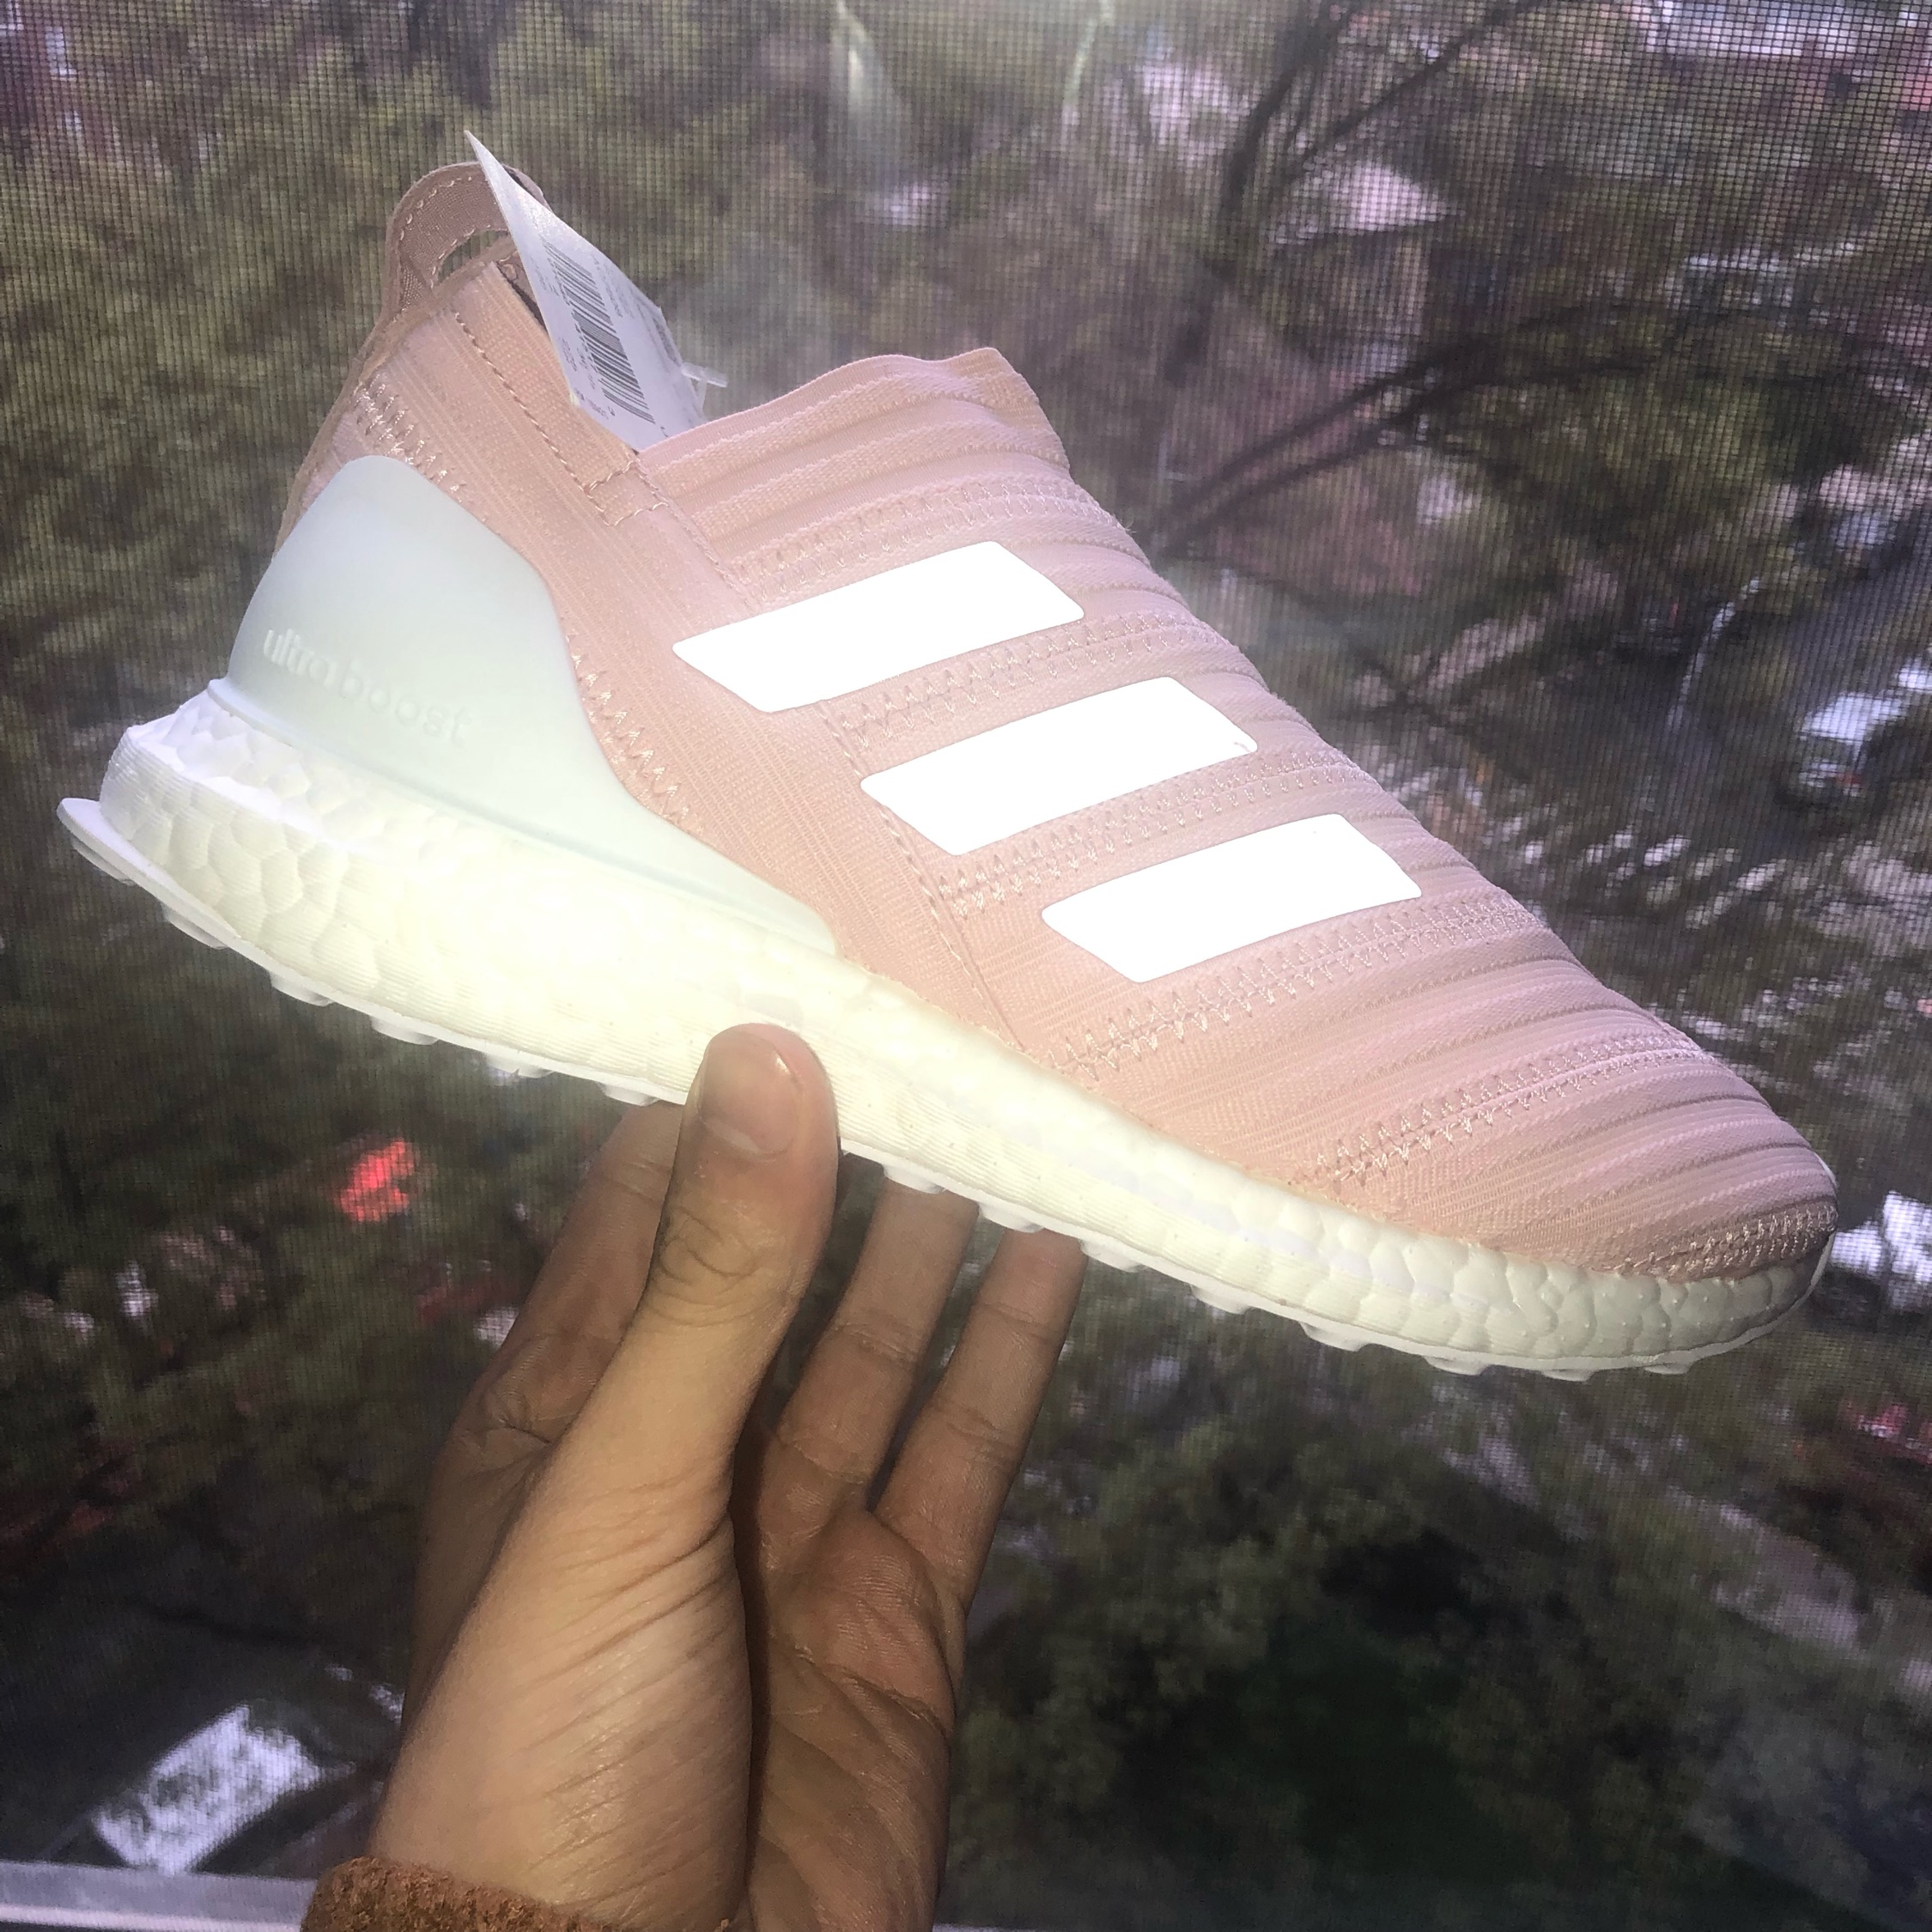 buy online 3edf8 8cf66 Kith Ultraboost Bnib Under Retail Price Firm